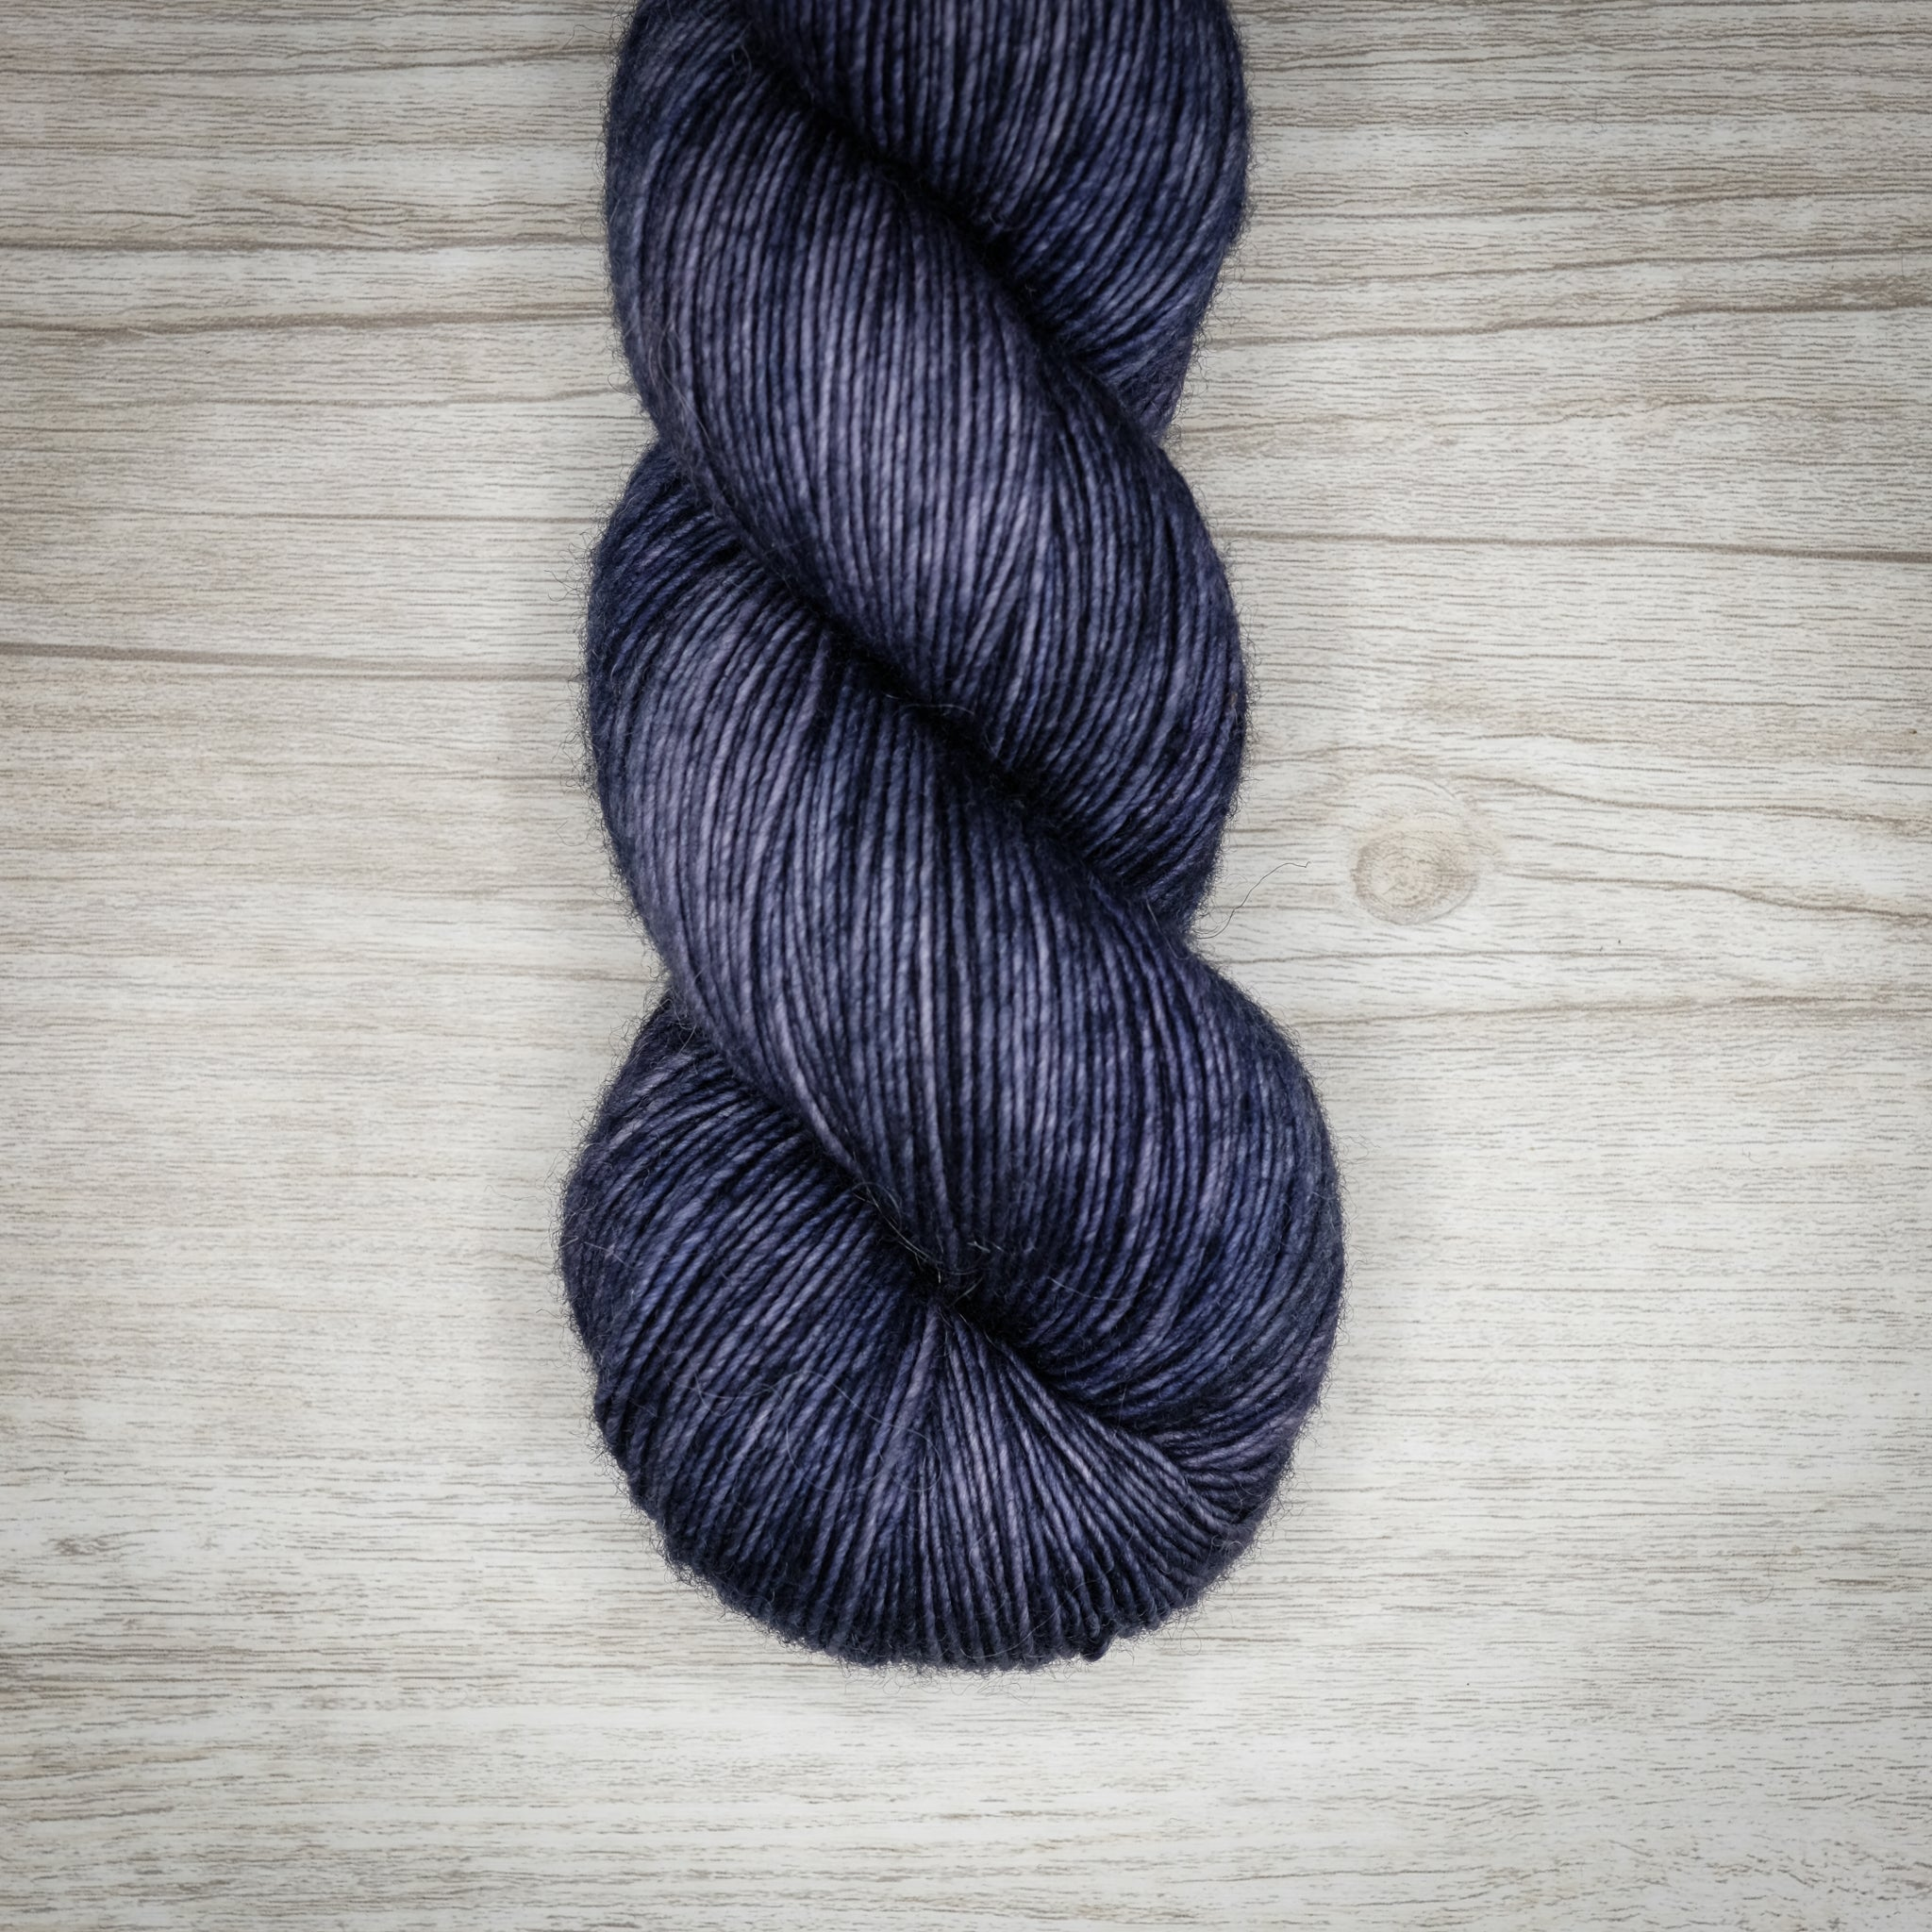 Twilight - Merino Linen Singles Dyed to Order